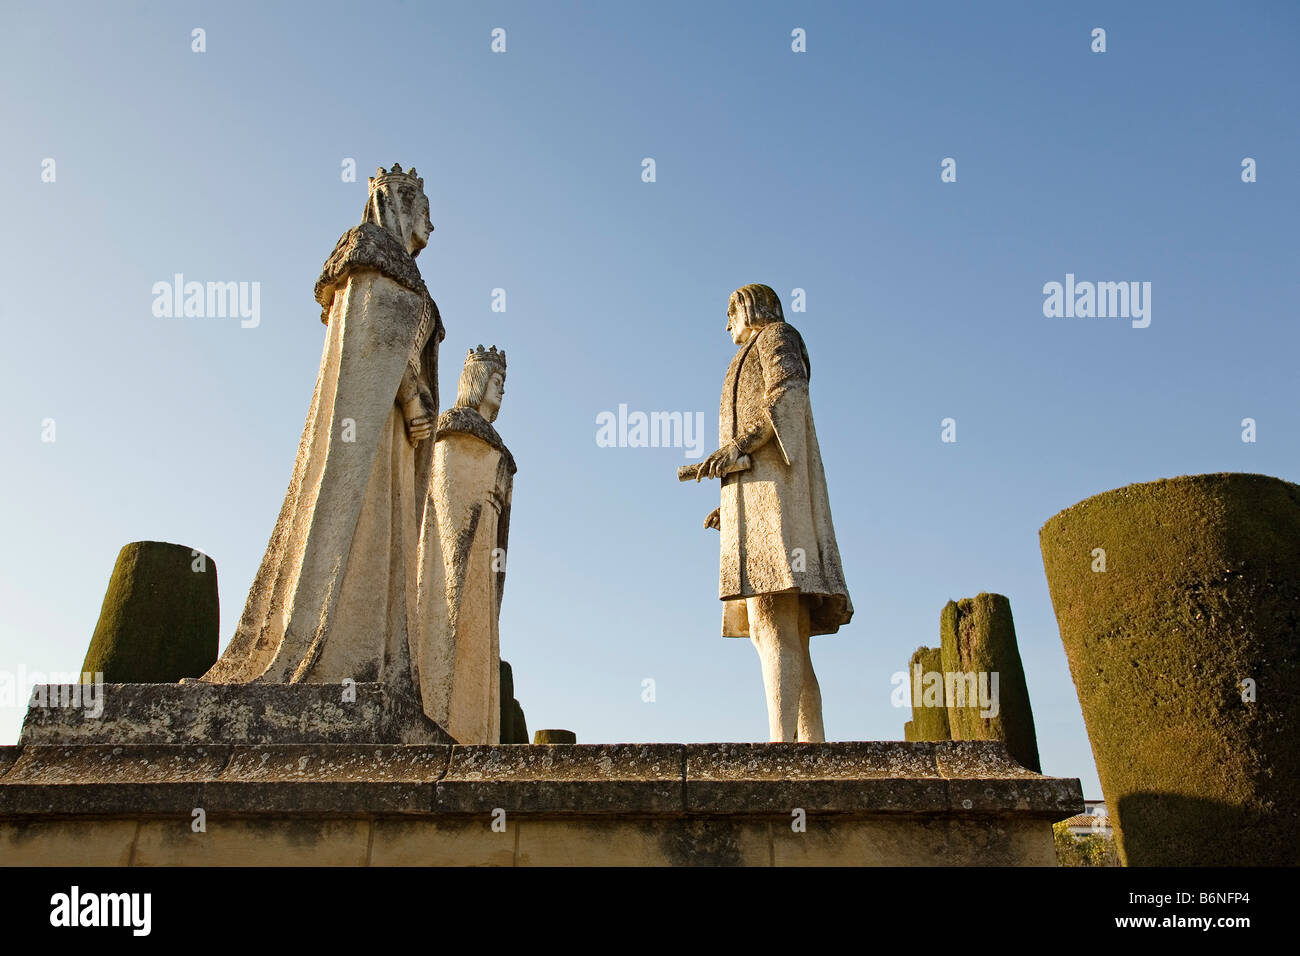 statues of Columbus and the Catholic Monarchs alcazar of the reyes cristianos cordoba andalusia spain - Stock Image